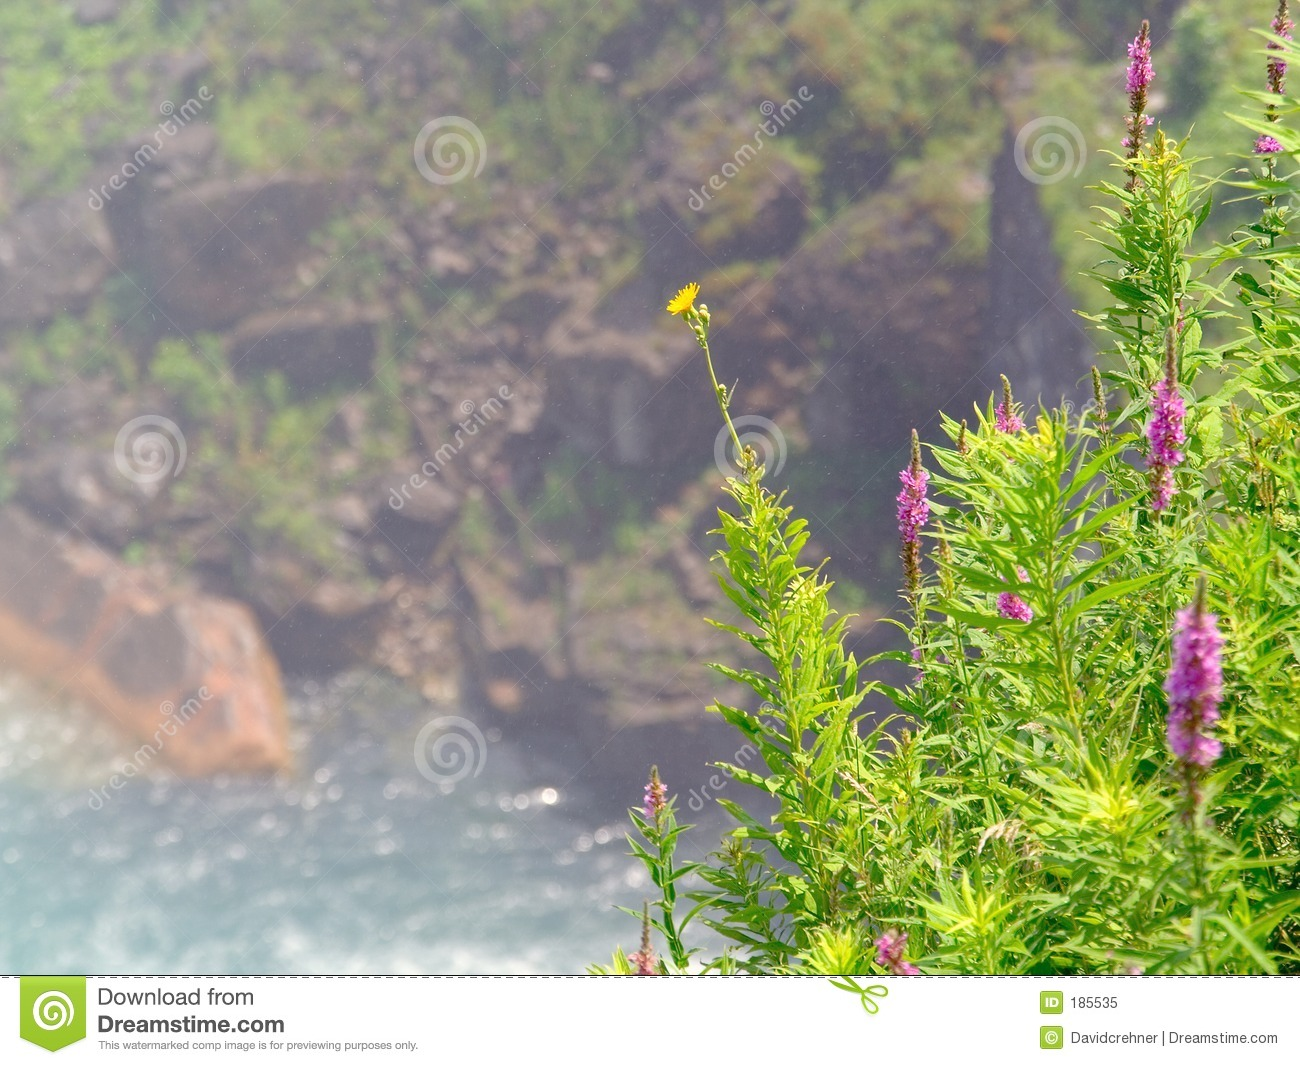 Colorful Weeds In Foreground Set Against Scenic Background Stock